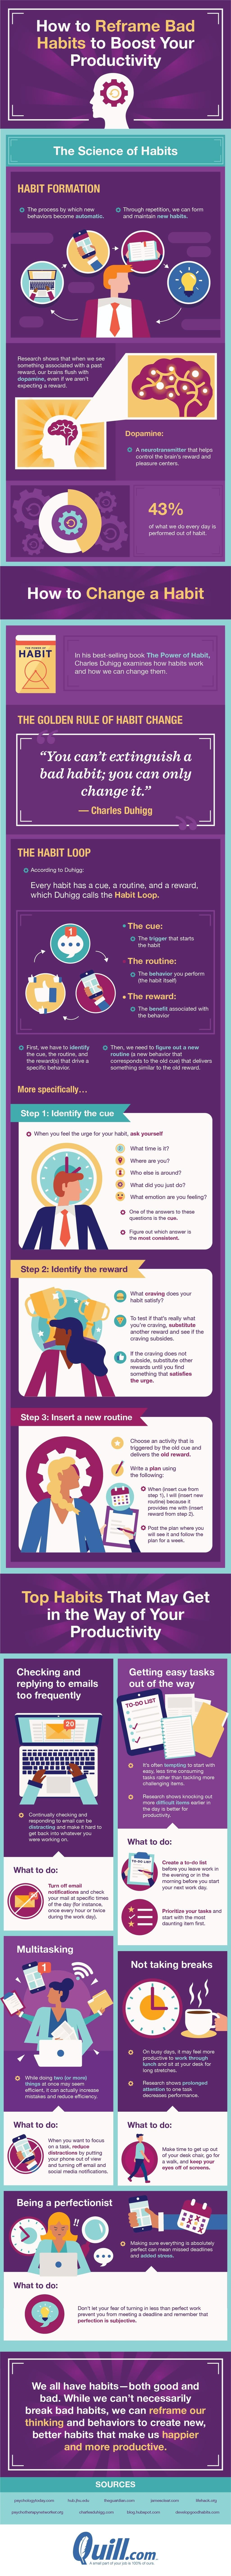 How to reframe bad habits to boost your productivity #infographic